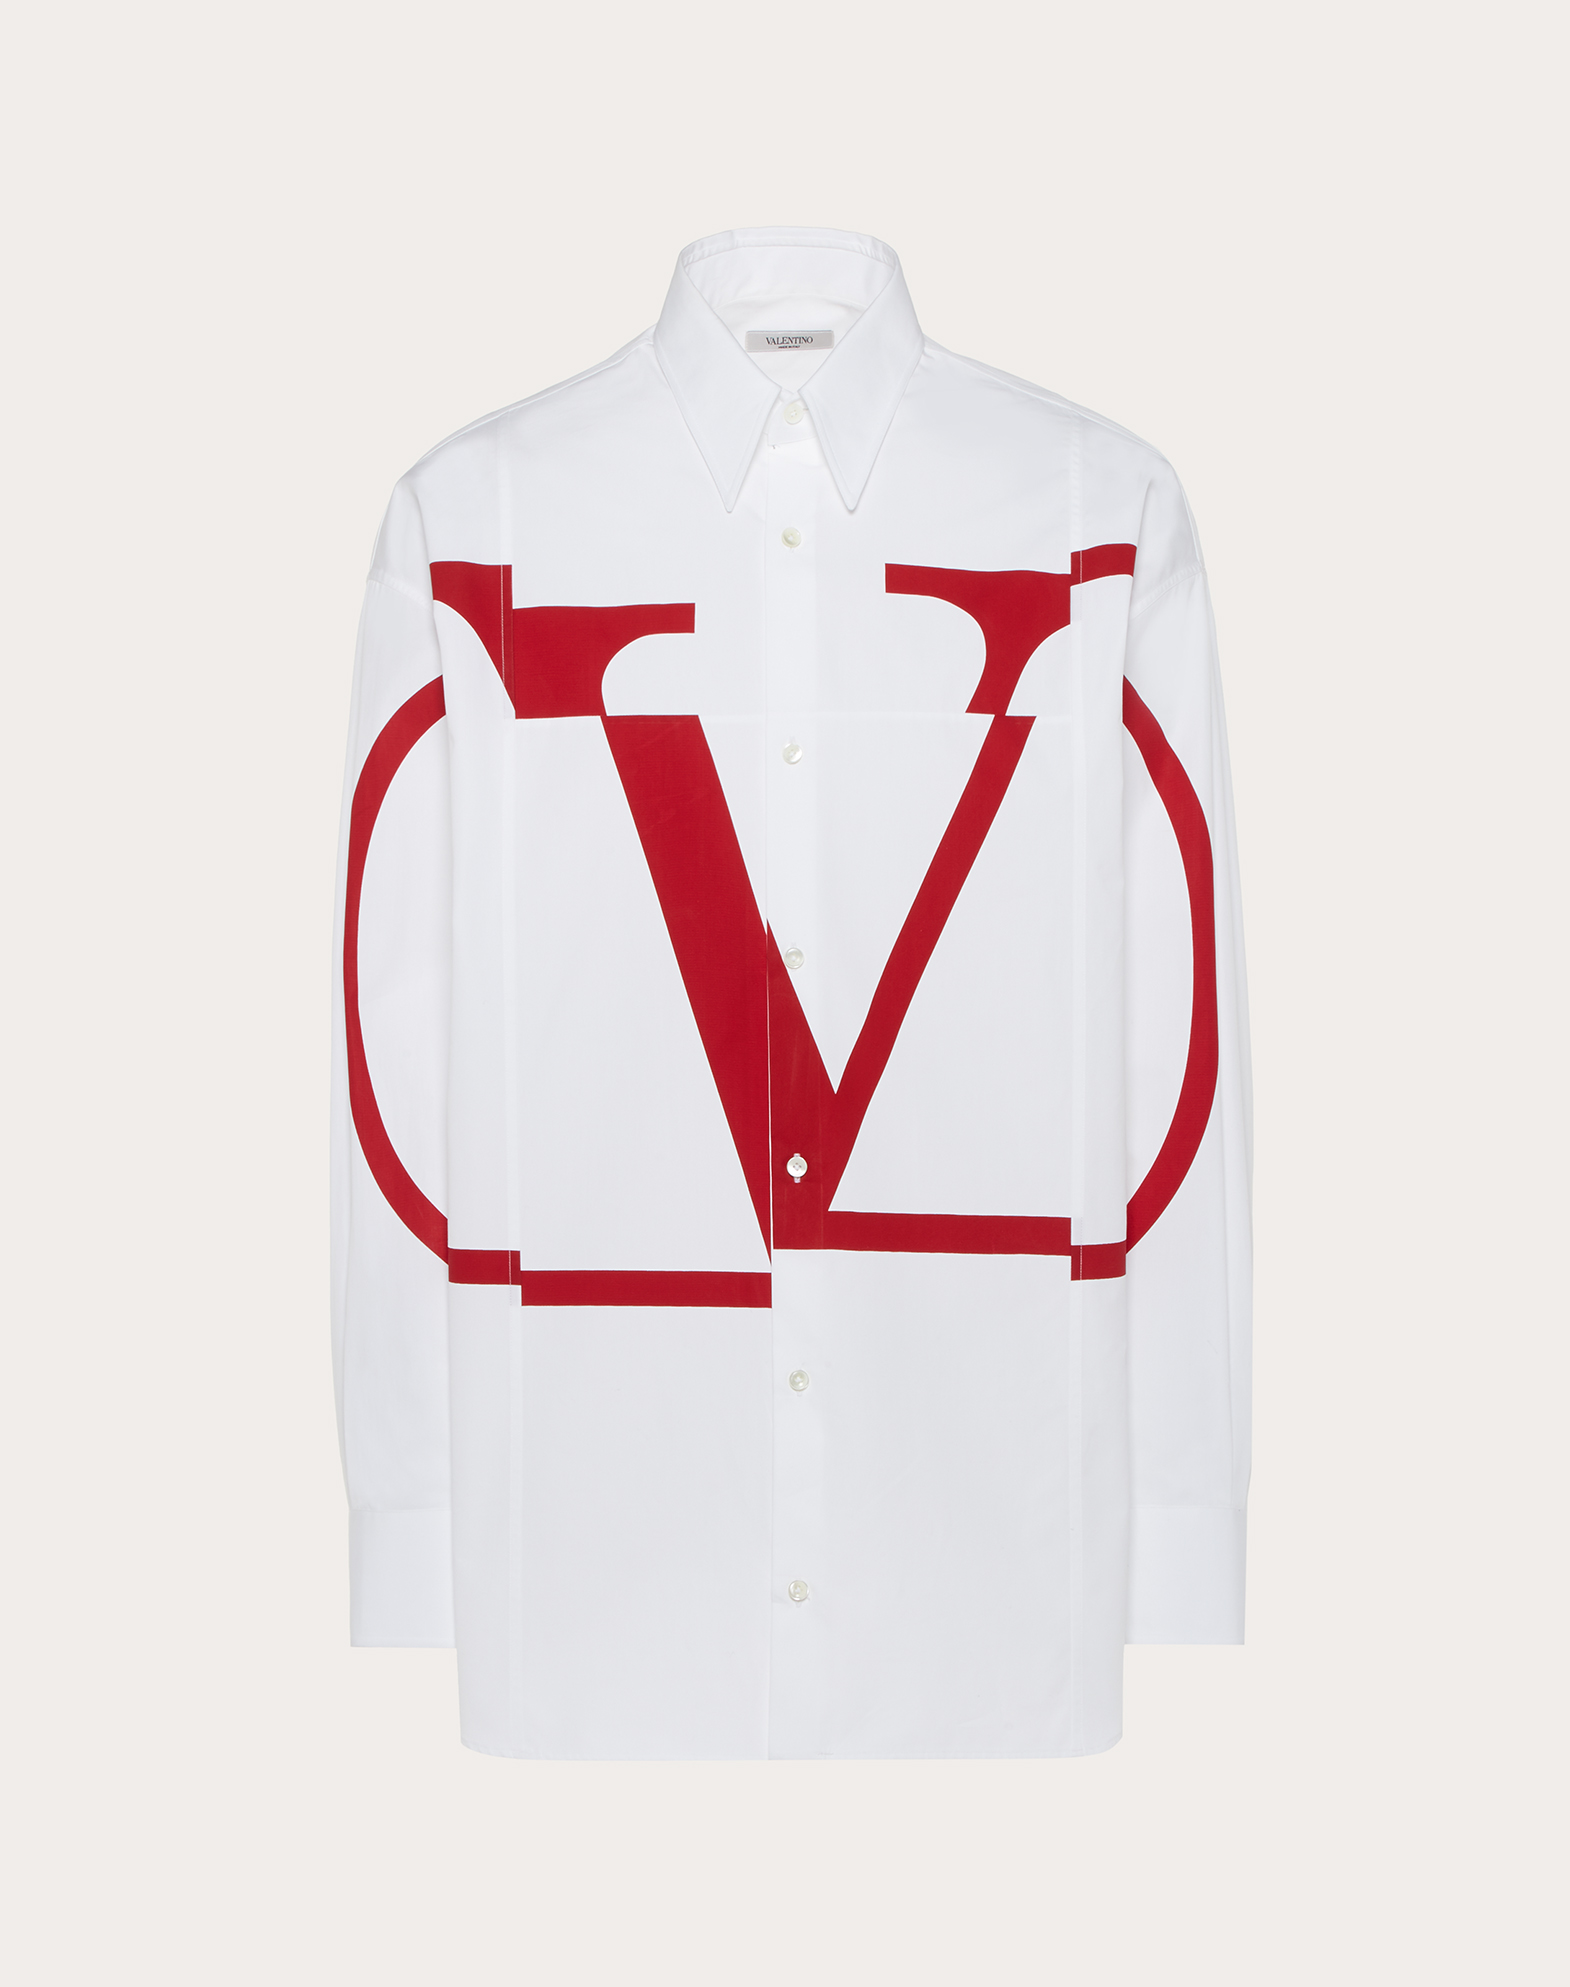 VLOGO OVERSIZED SHIRT